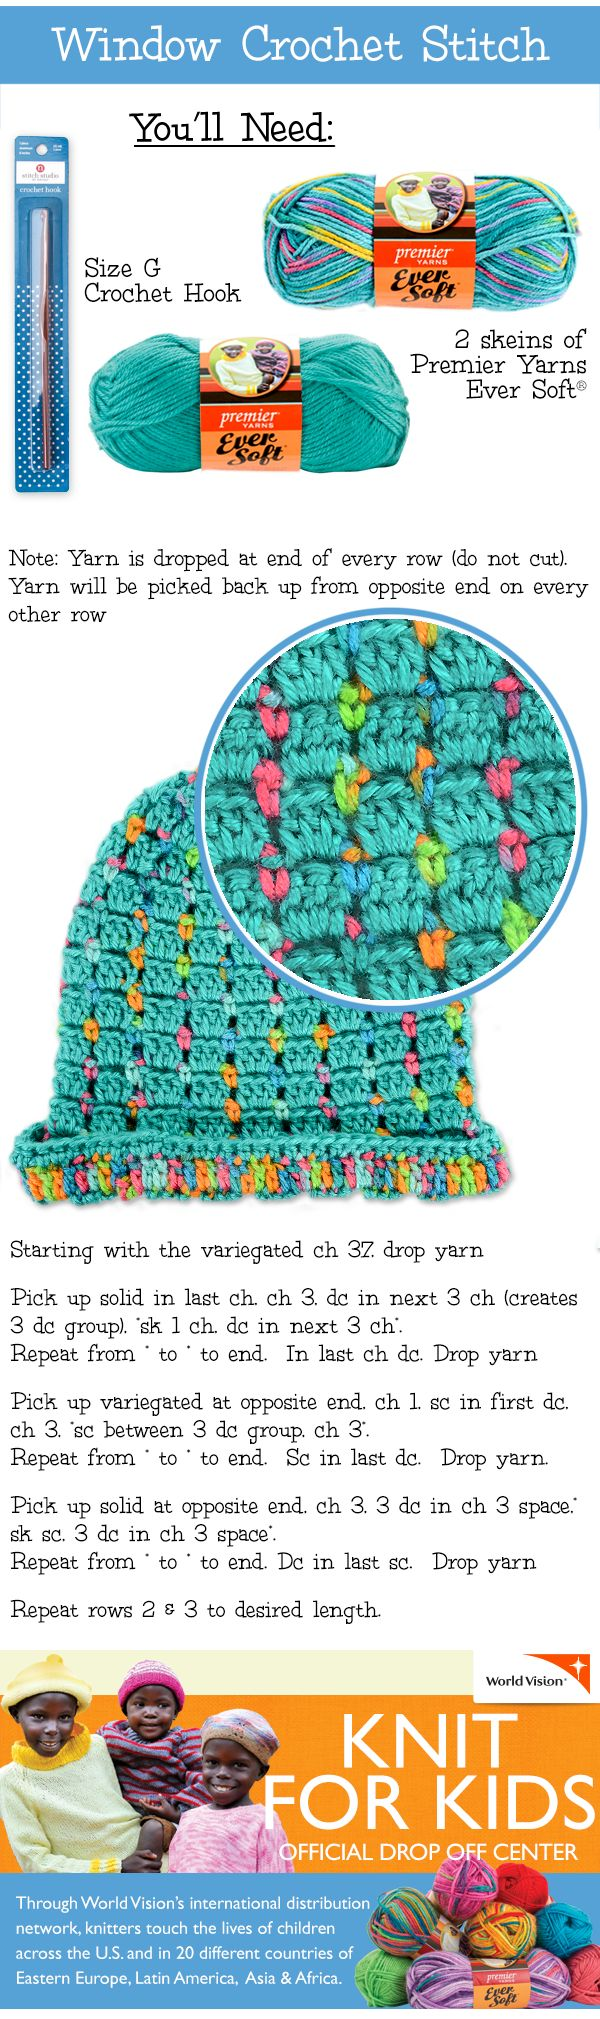 Let Us Show You How To Use A Single Stitch To Create An Entire Project!